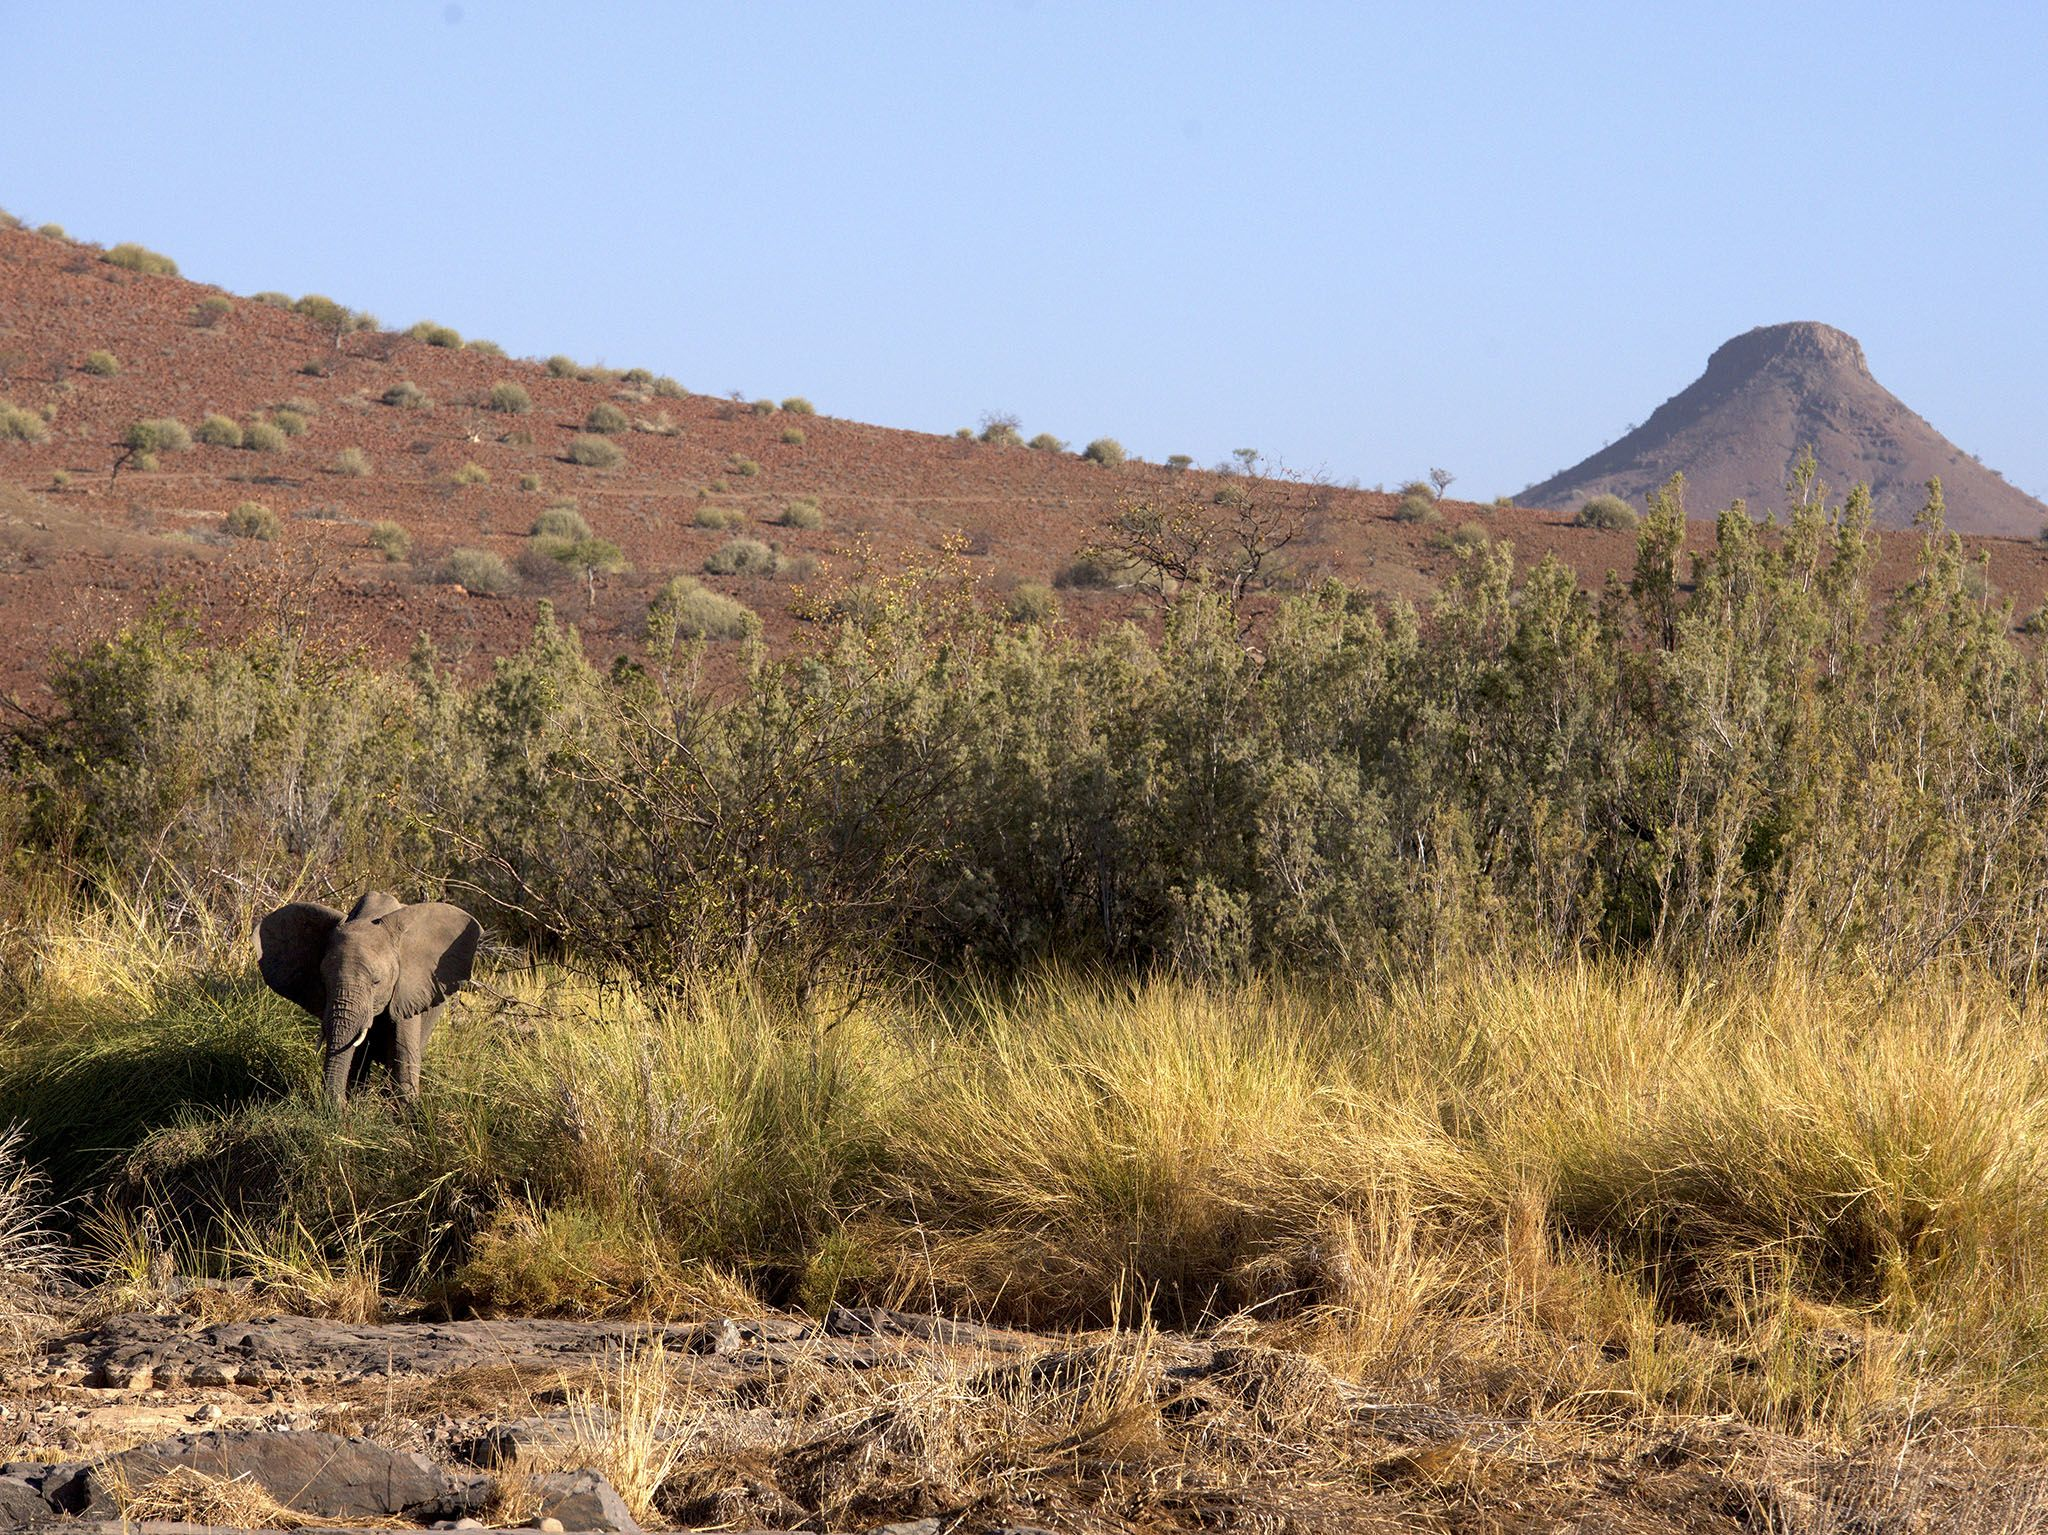 Namibia: The Kunene Desert Elephants share their habitat with farmers and their livestock –... [Photo of the day - June 2017]